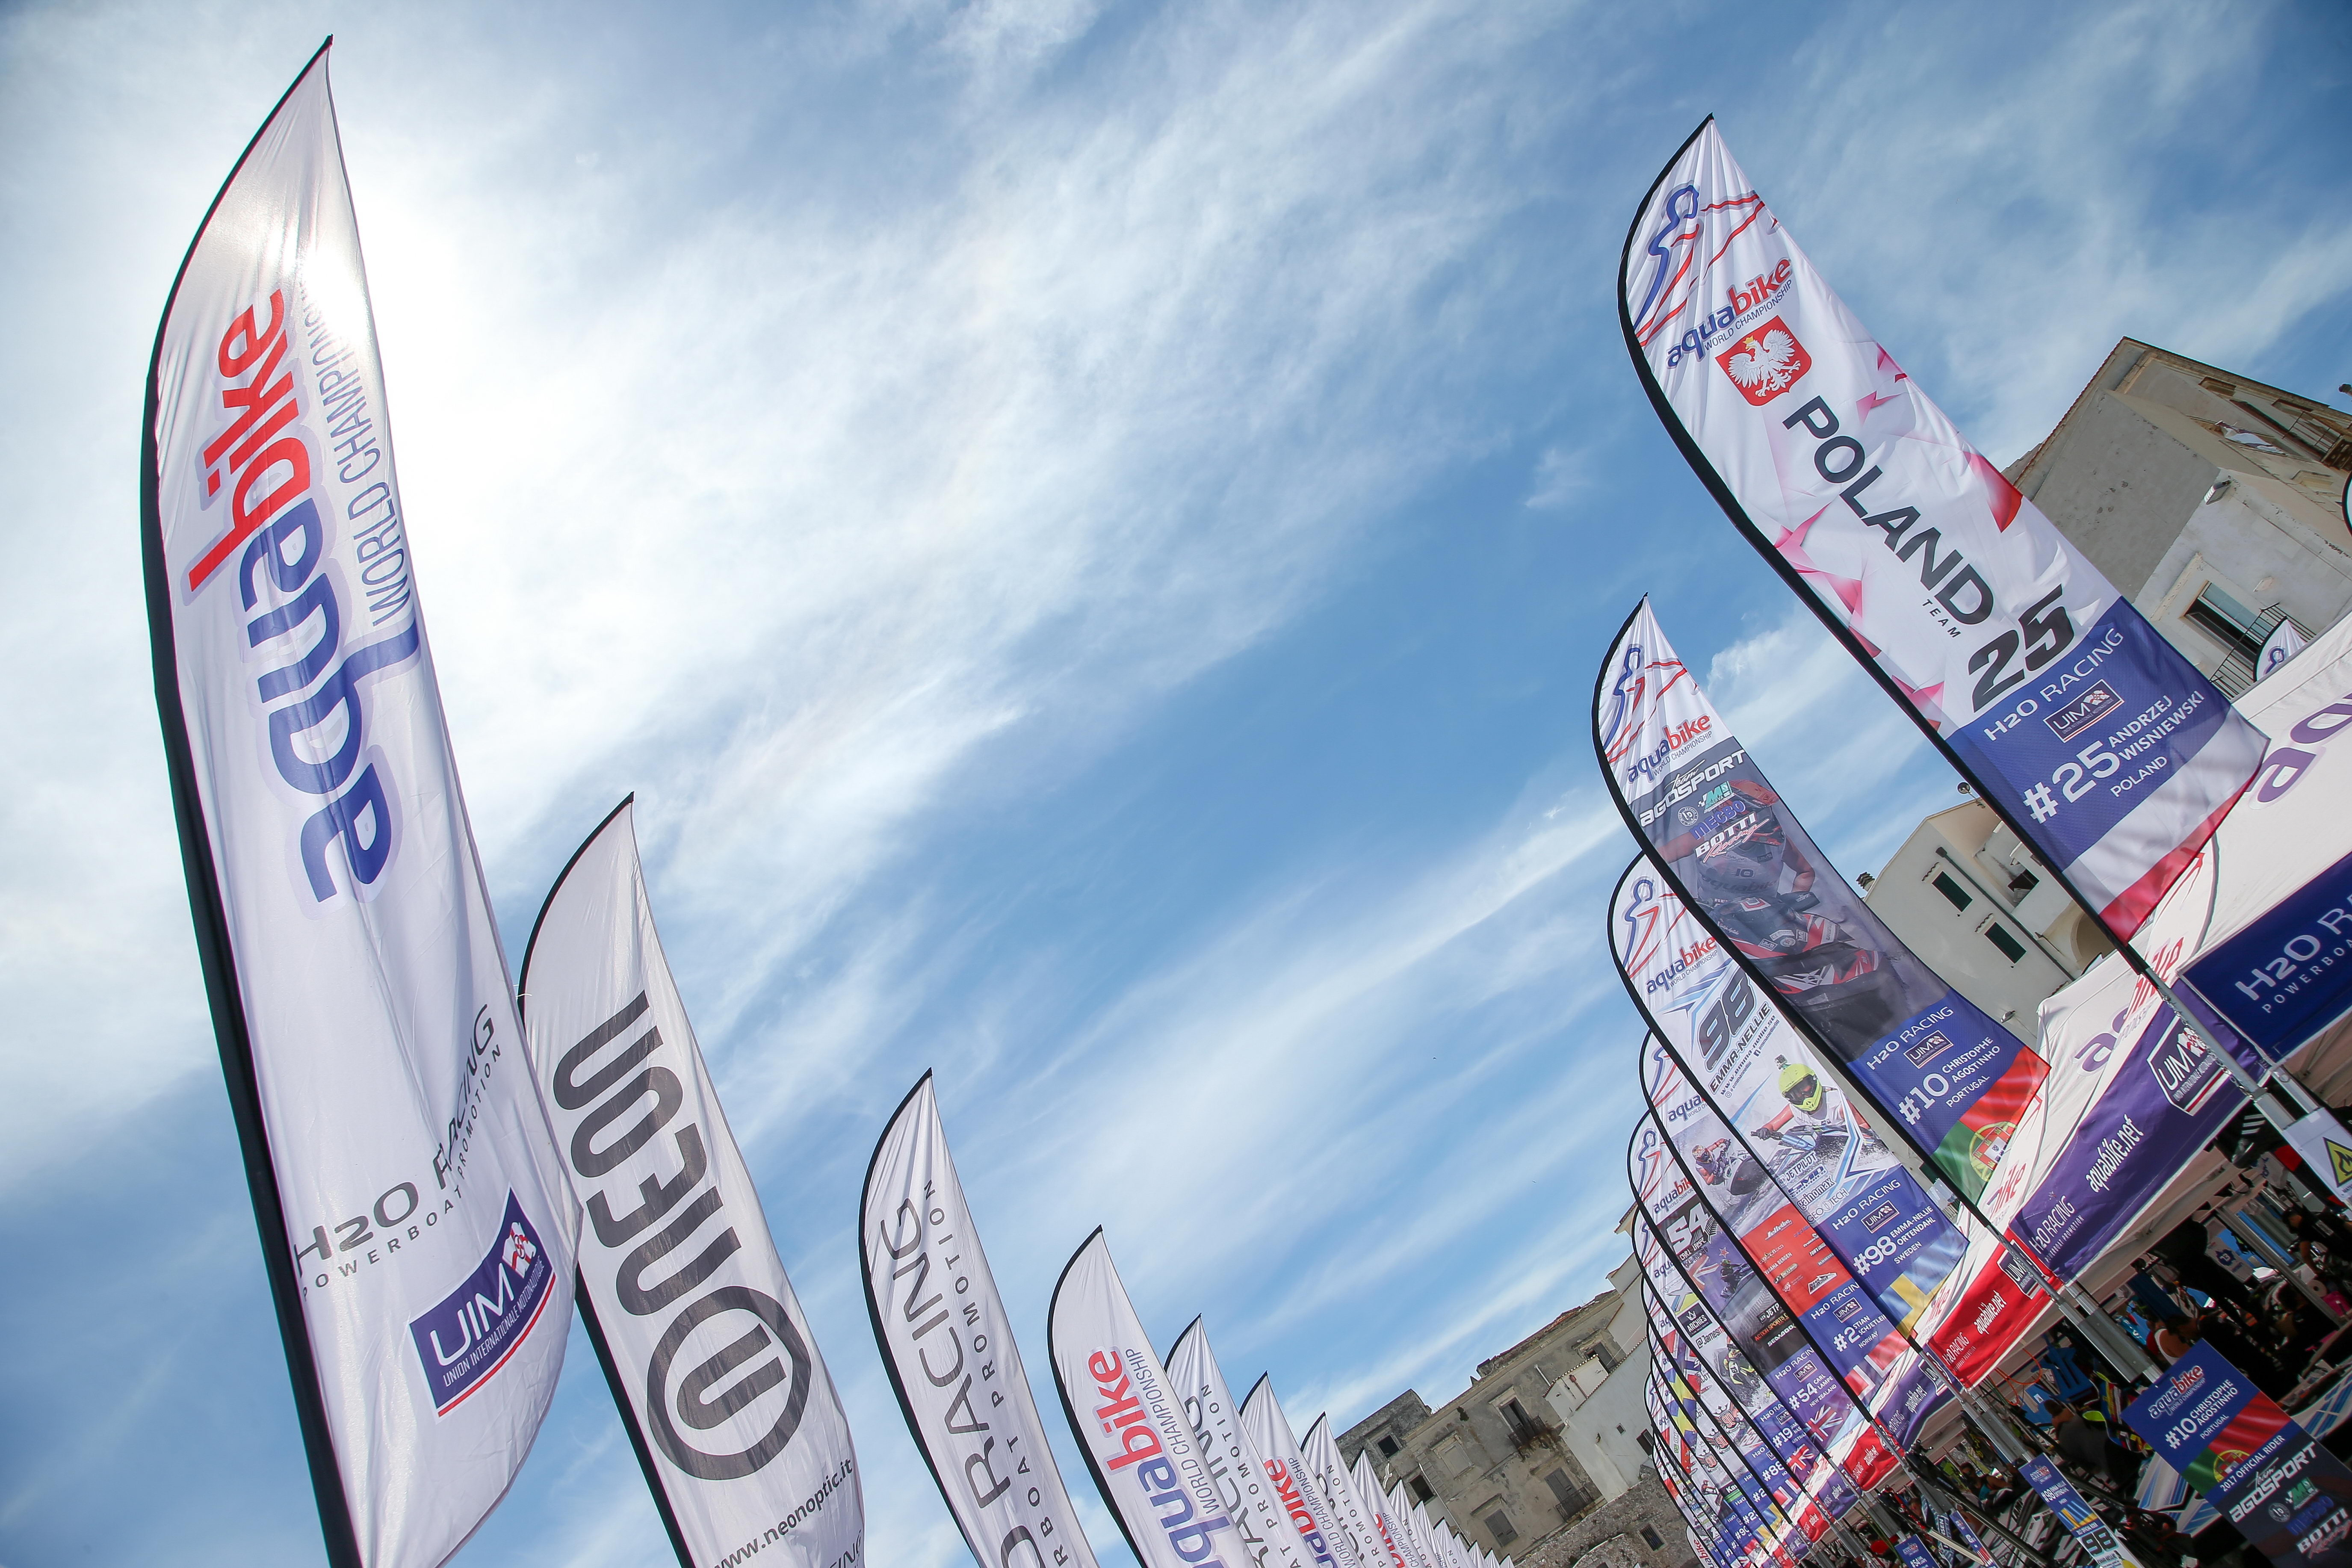 BACK-TO-BACK GRAND PRIX IN GALLIPOLI AND OLBIA TO KICK-START UIM-ABP SEASON